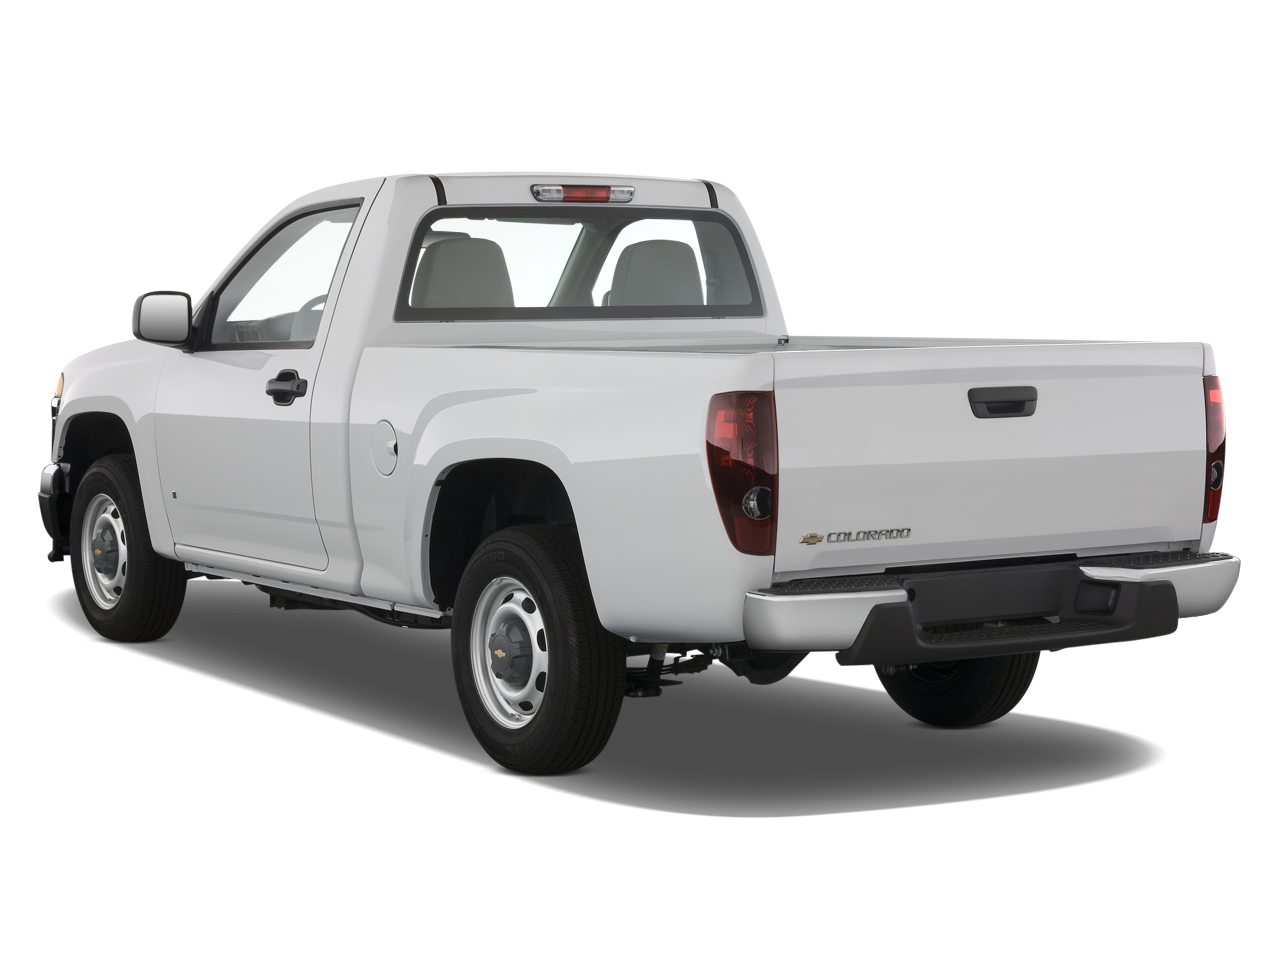 2009 chevy colorado and 2009 gmc canyon - first drive midsize